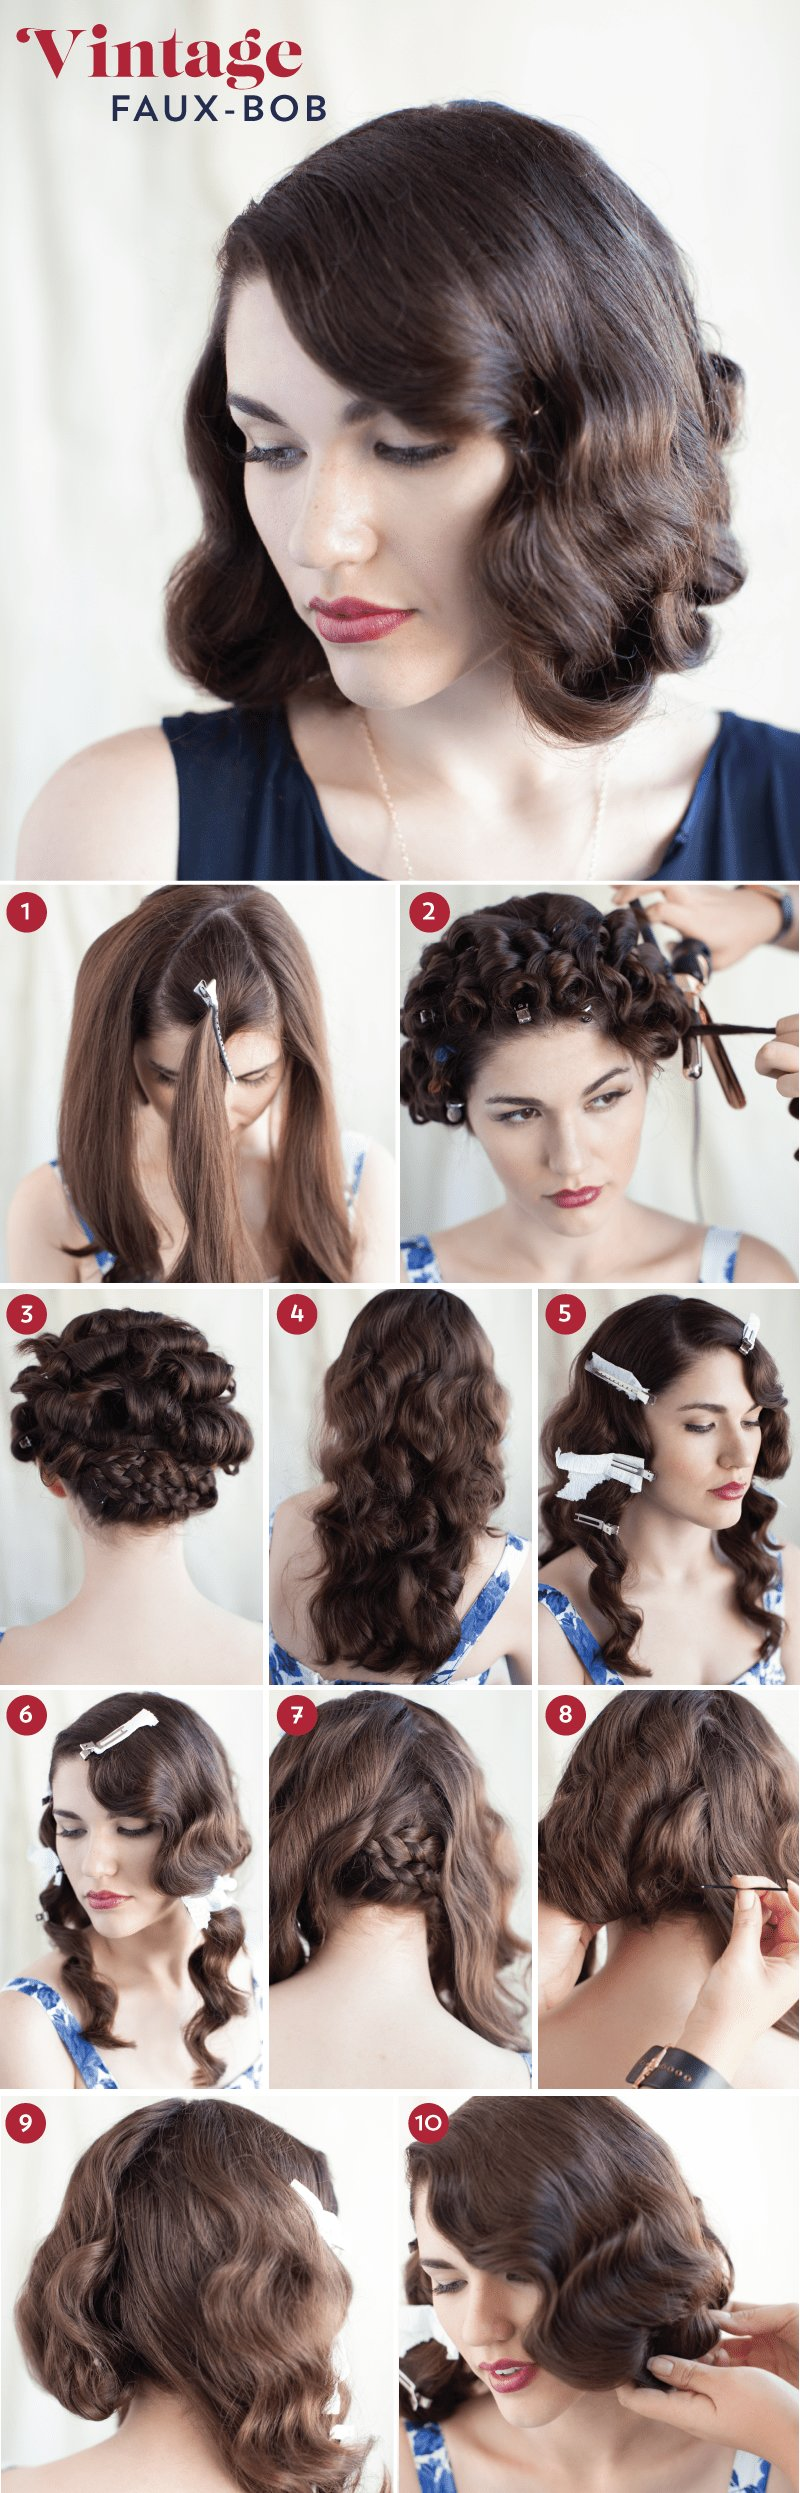 The Best Go Short For The Day With Our Faux Bob Tutorial Pictures